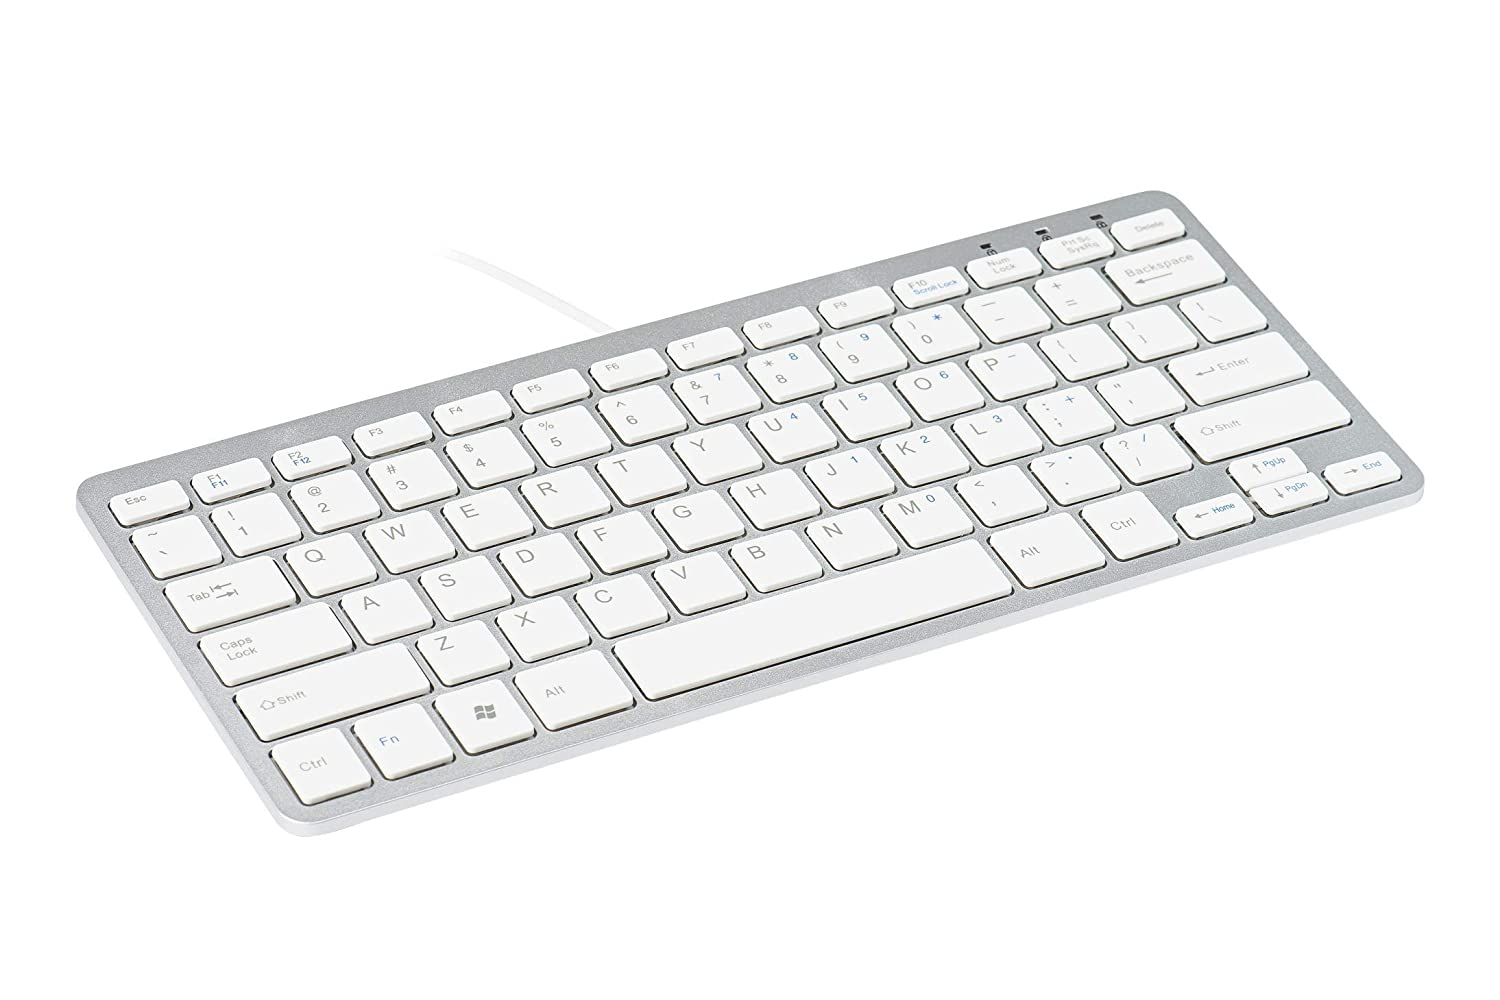 TEXTORM COMPACT SLIM SILVER KEYBOARD DRIVER